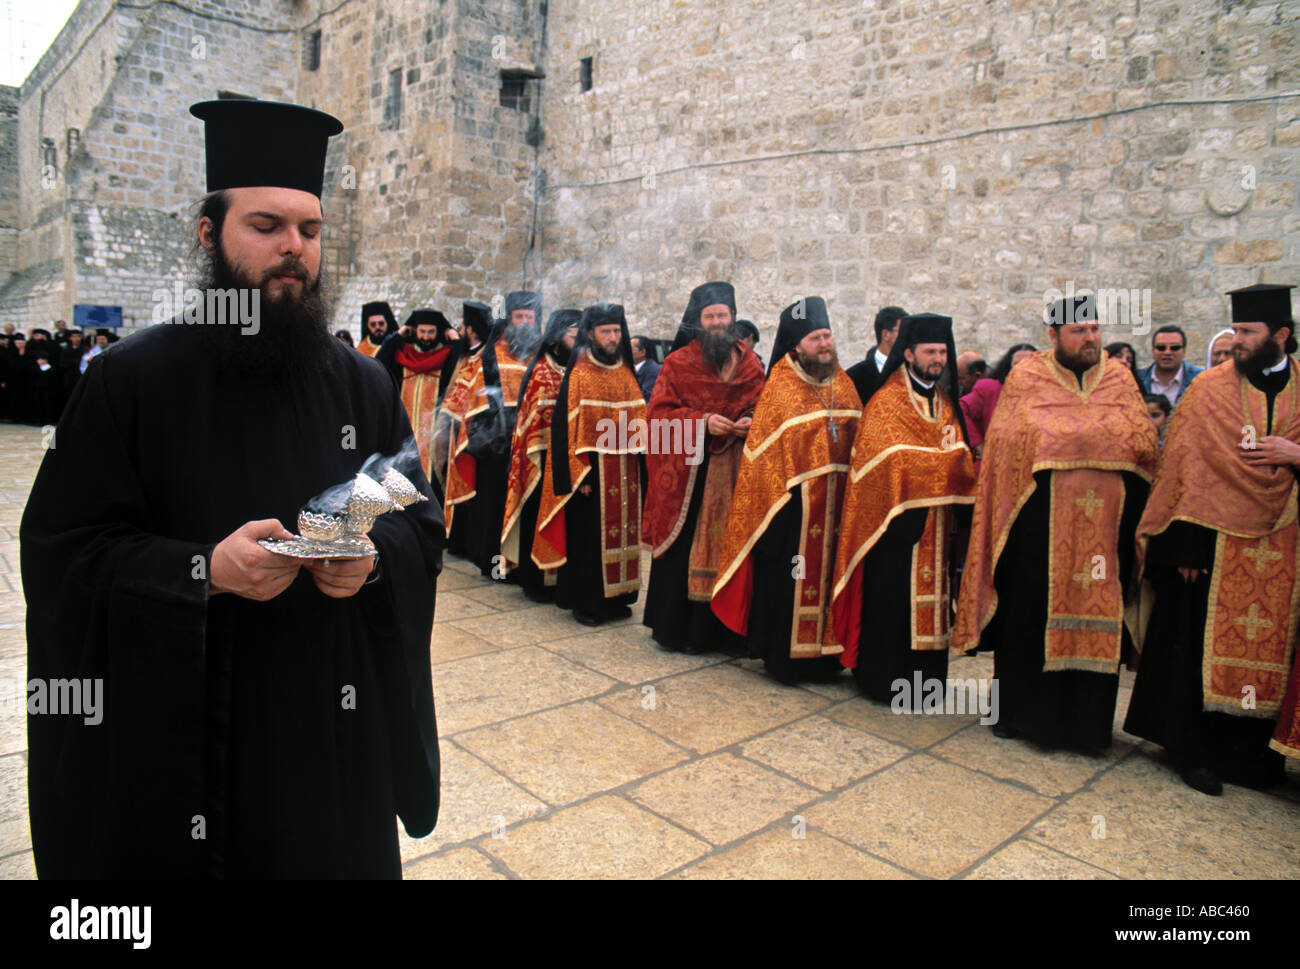 Orthodox Christmas Procession Bethlehem 2020 Greek Orthodox Christmas procession, Bethlehem, Israel Stock Photo